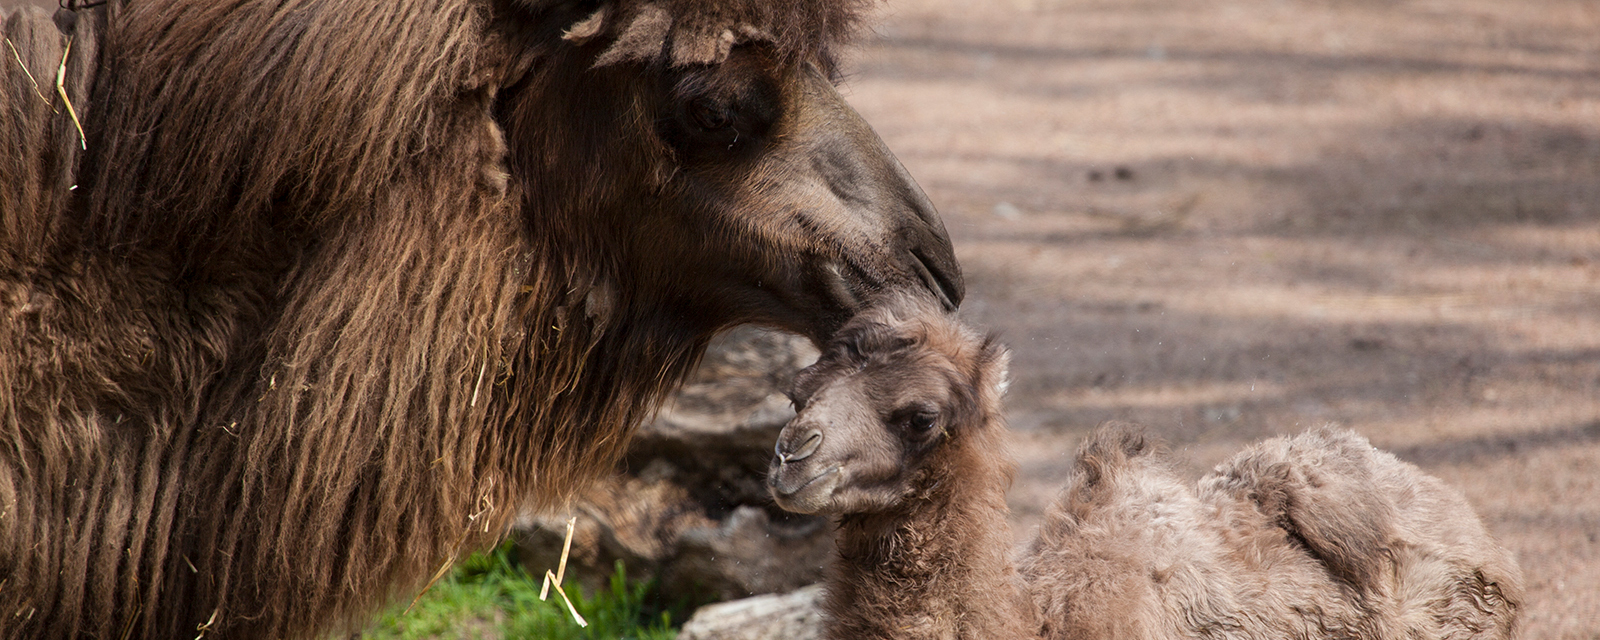 A Bactrian camel licks its offspring